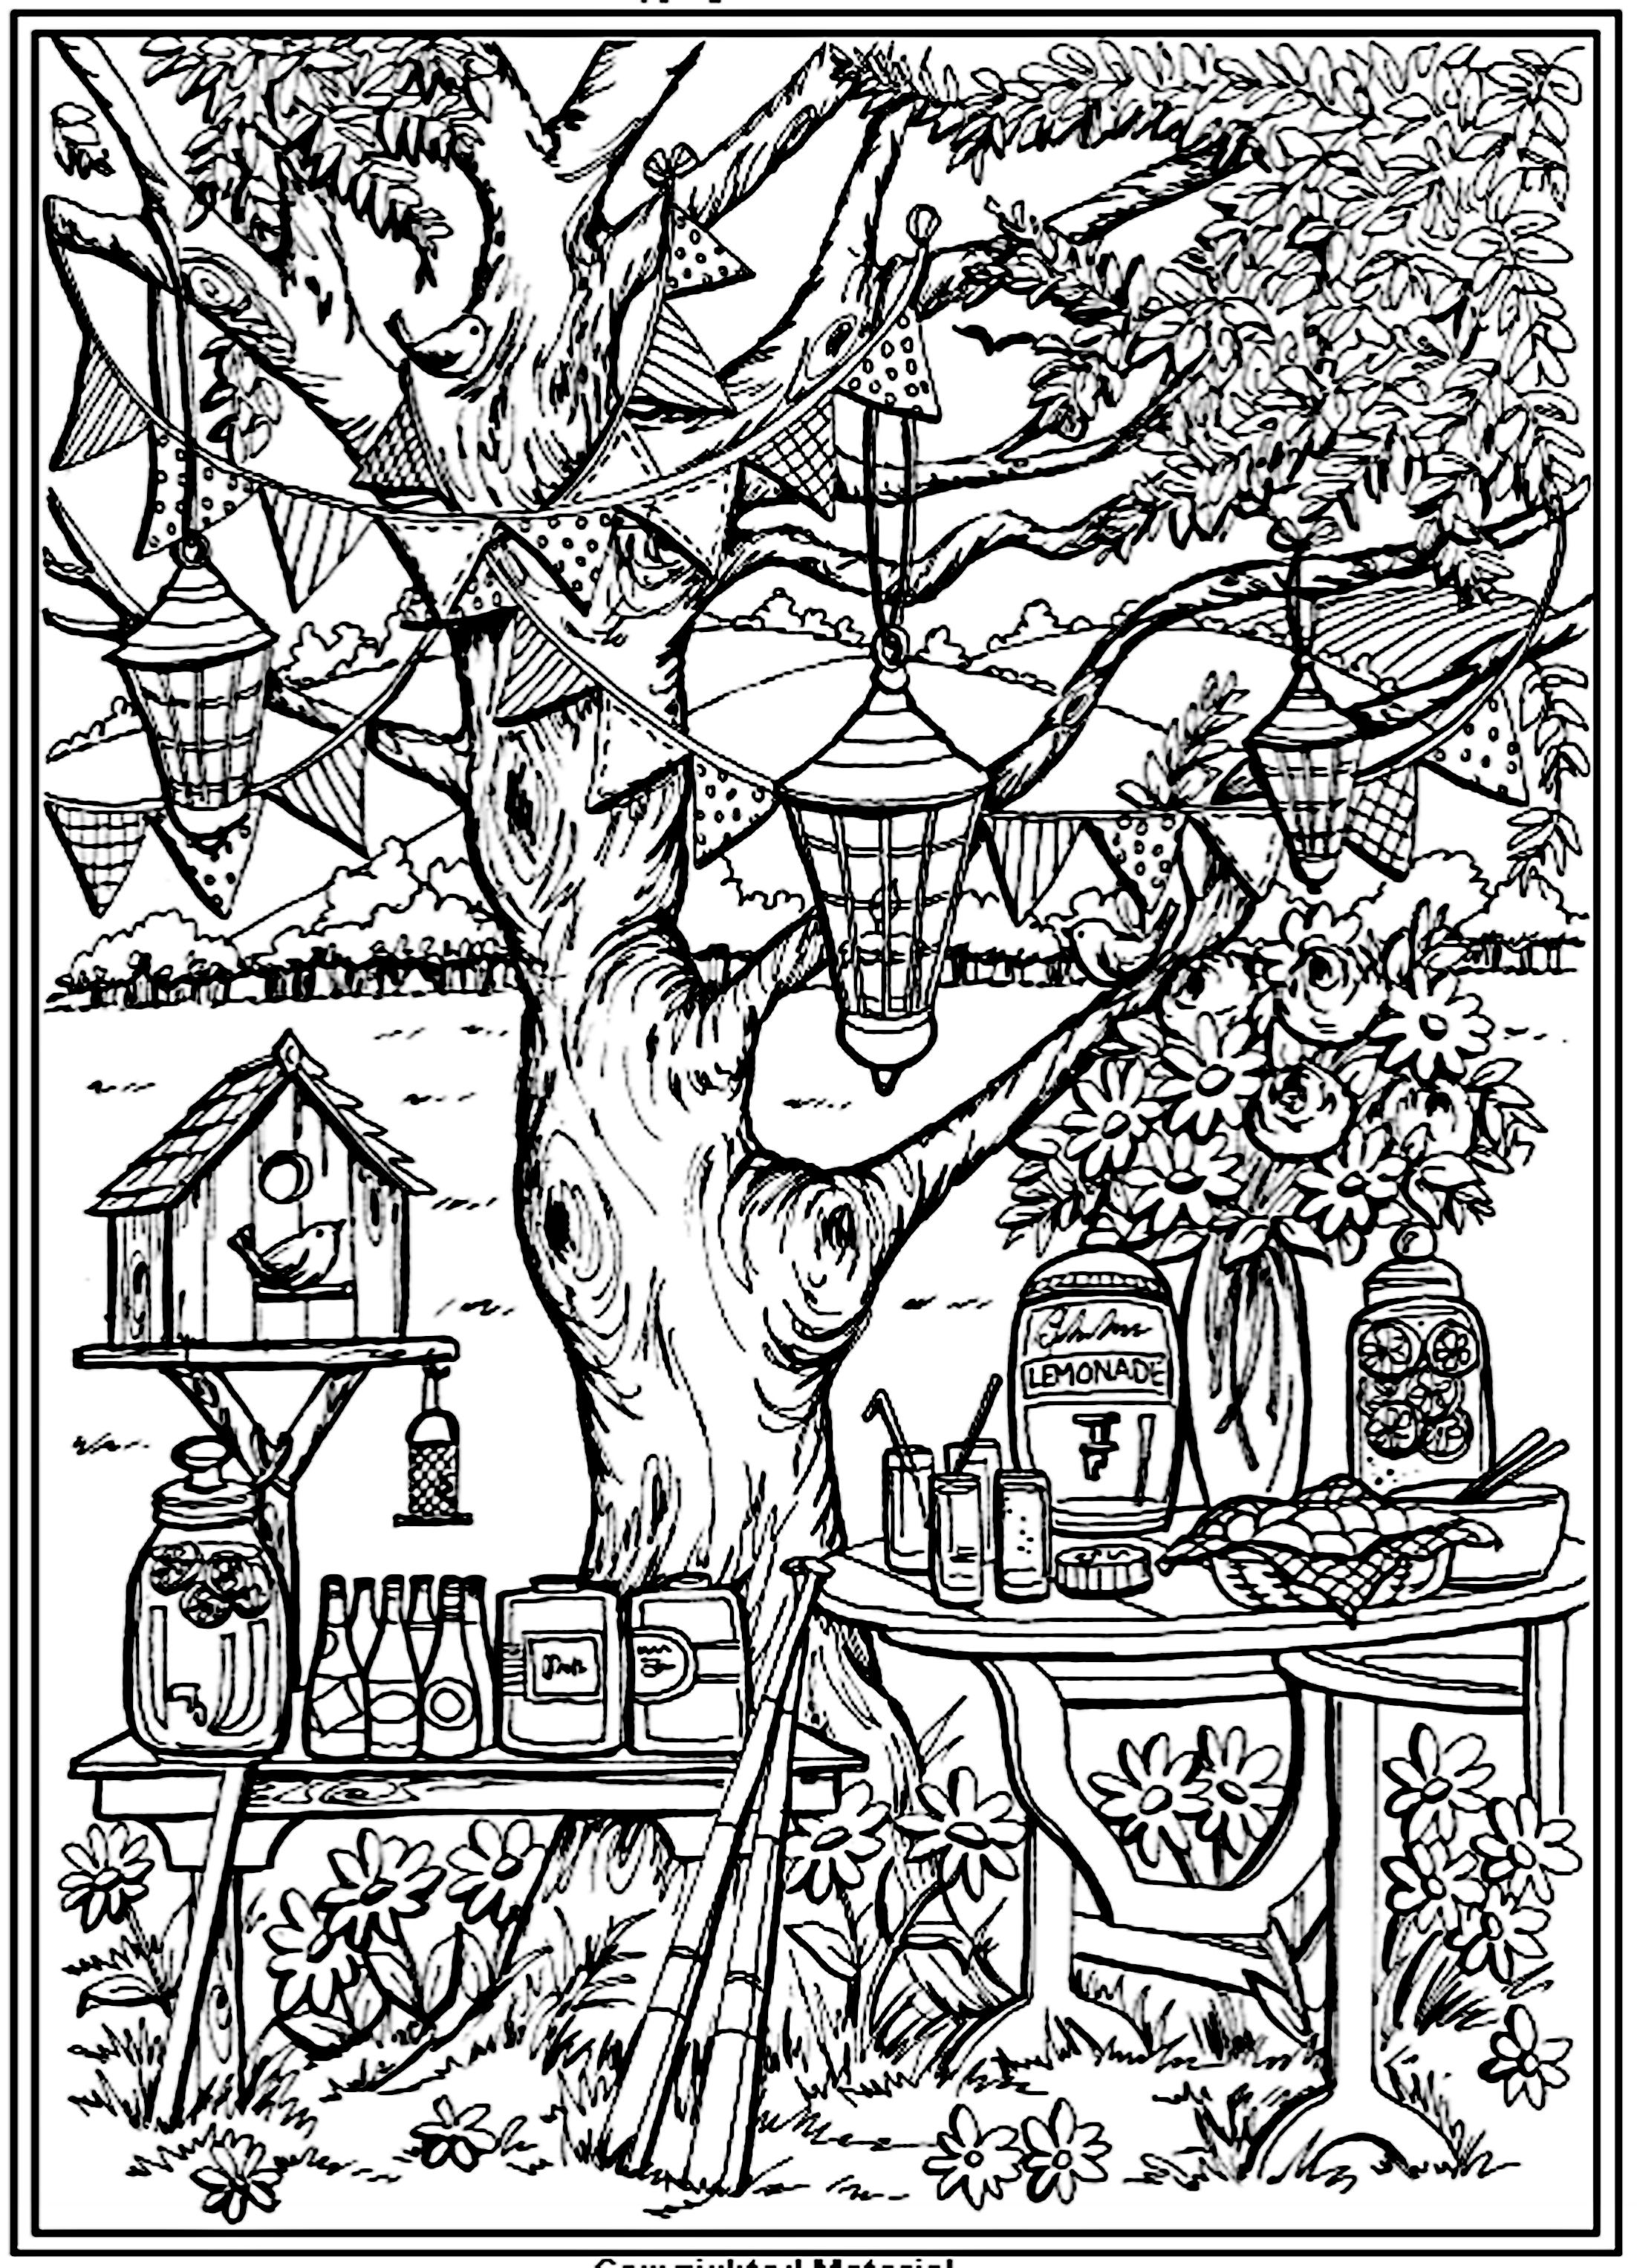 Magic Garden Coloring Page For Adults Creative Haven Coloring Books Garden Coloring Pages Coloring Pages